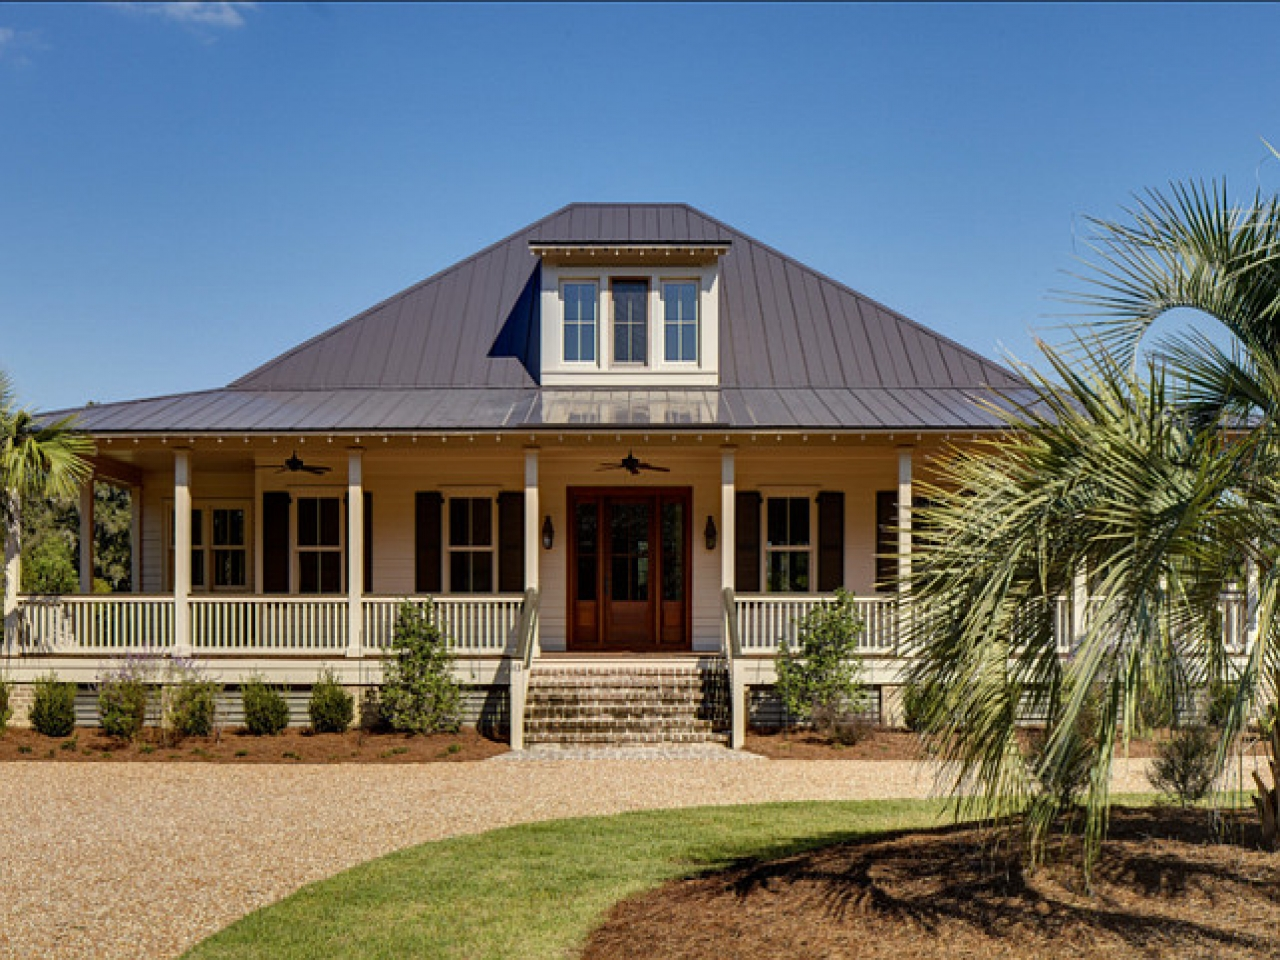 Autumn Mist Manor House Plan furthermore Timber Bridge Cottage Plan furthermore SL594 also Clerestory House Plans Exterior Traditional With Gable Roof White Trim Eyebrow Dormer in addition Caribbean Plantation Home Plans. on tidewater house plans home